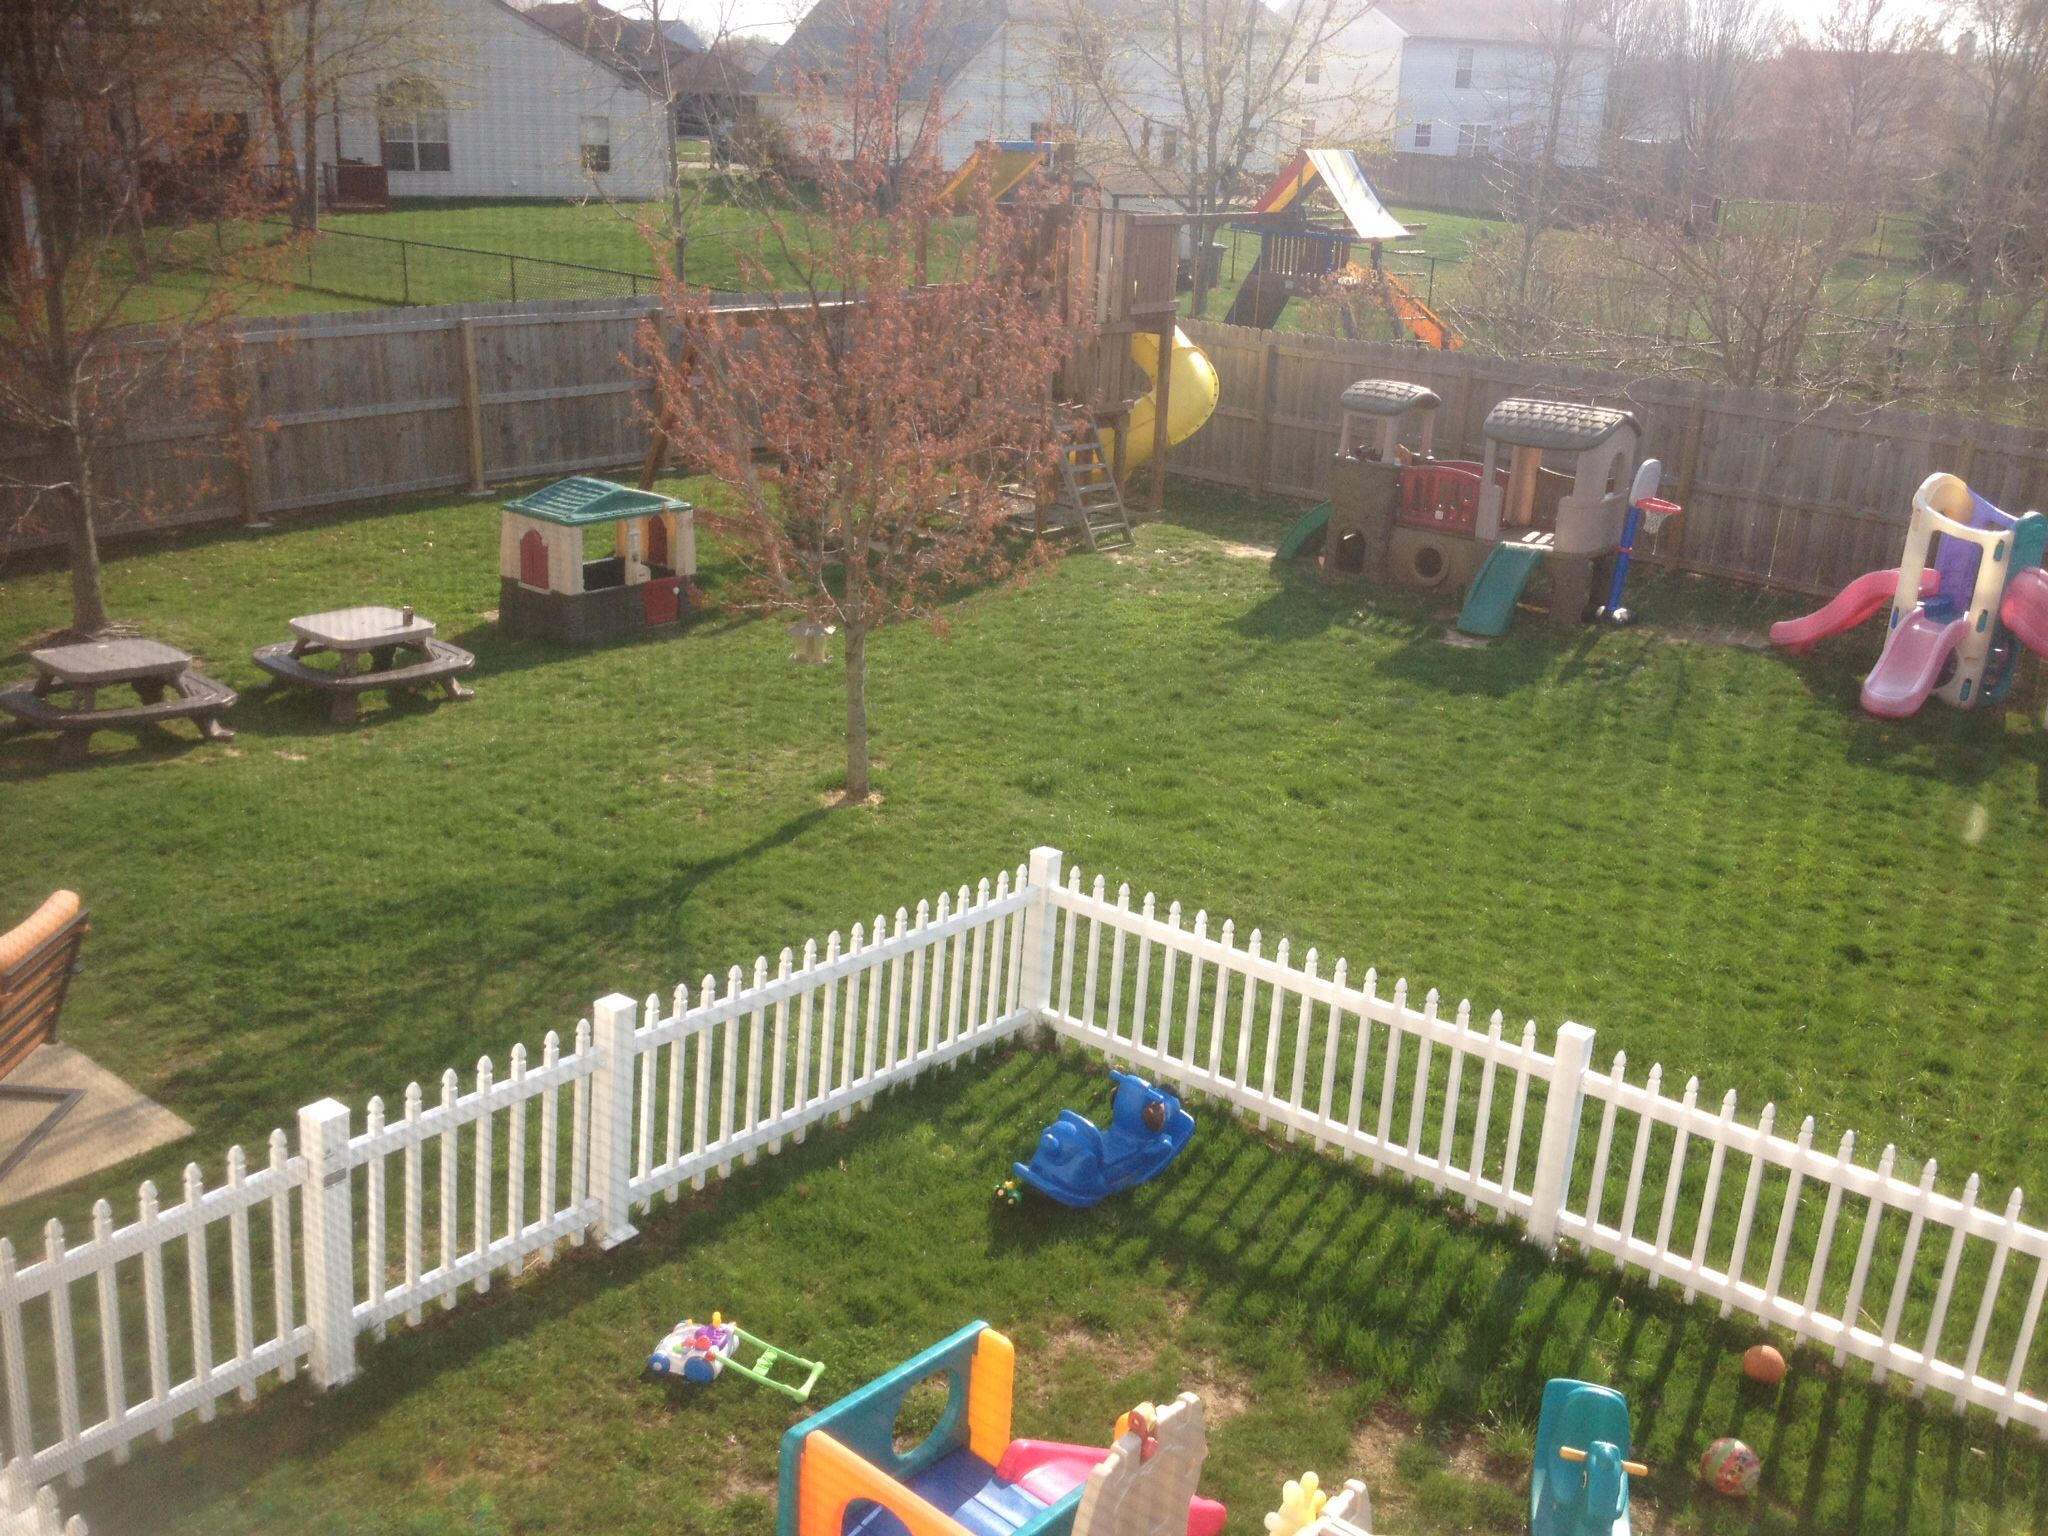 Outdoors play areas white fence keeps toddlers in fence within a